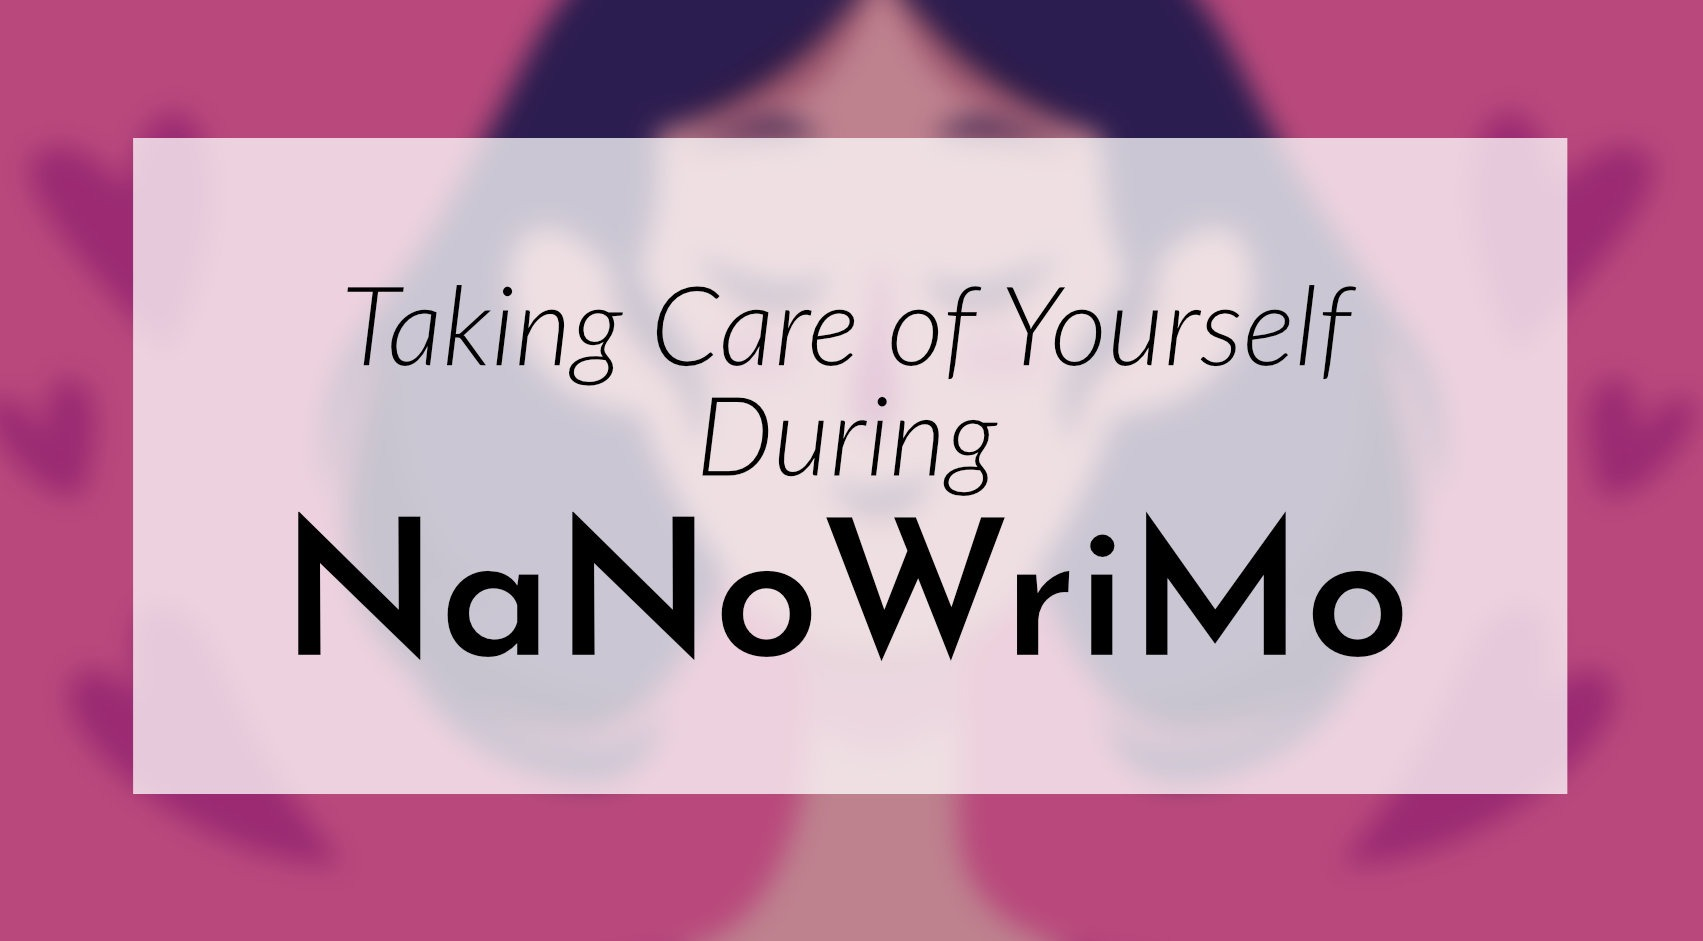 Taking Care of Yourself During NaNoWriMo